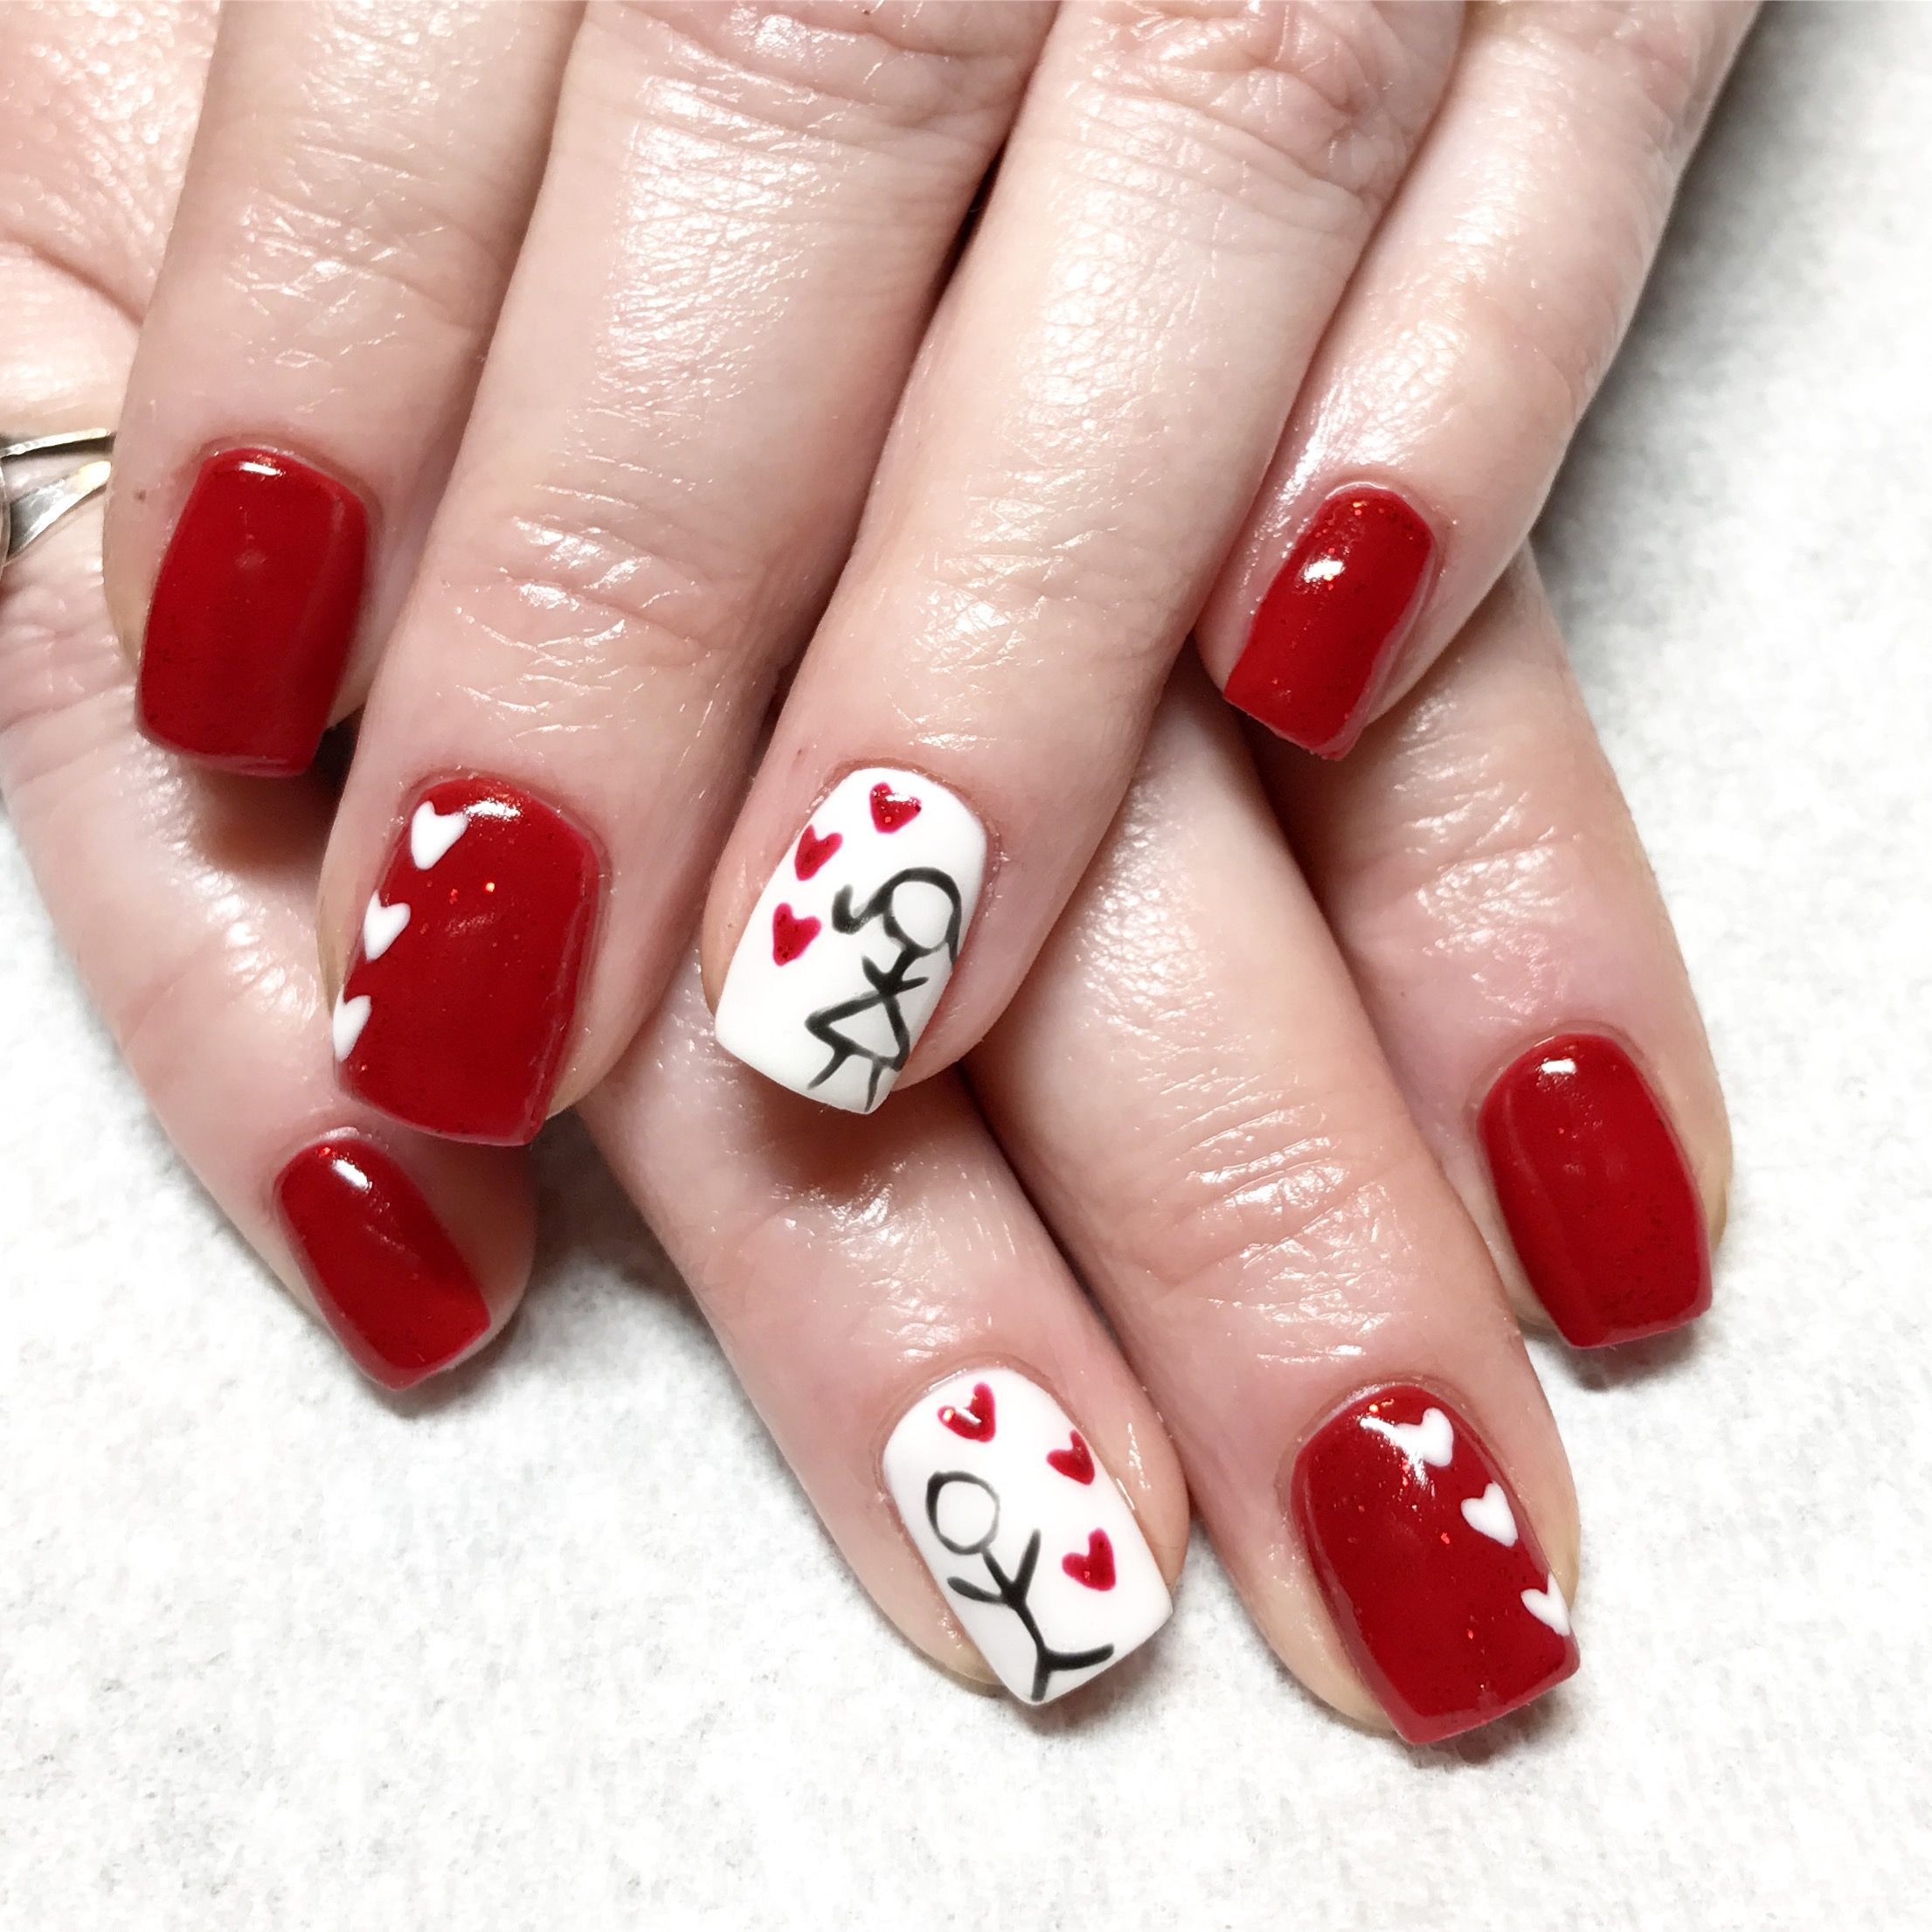 Valentine nails gel nails red nails heart nails hand painted valentine nails gel nails red nails heart nails hand painted nail art prinsesfo Gallery